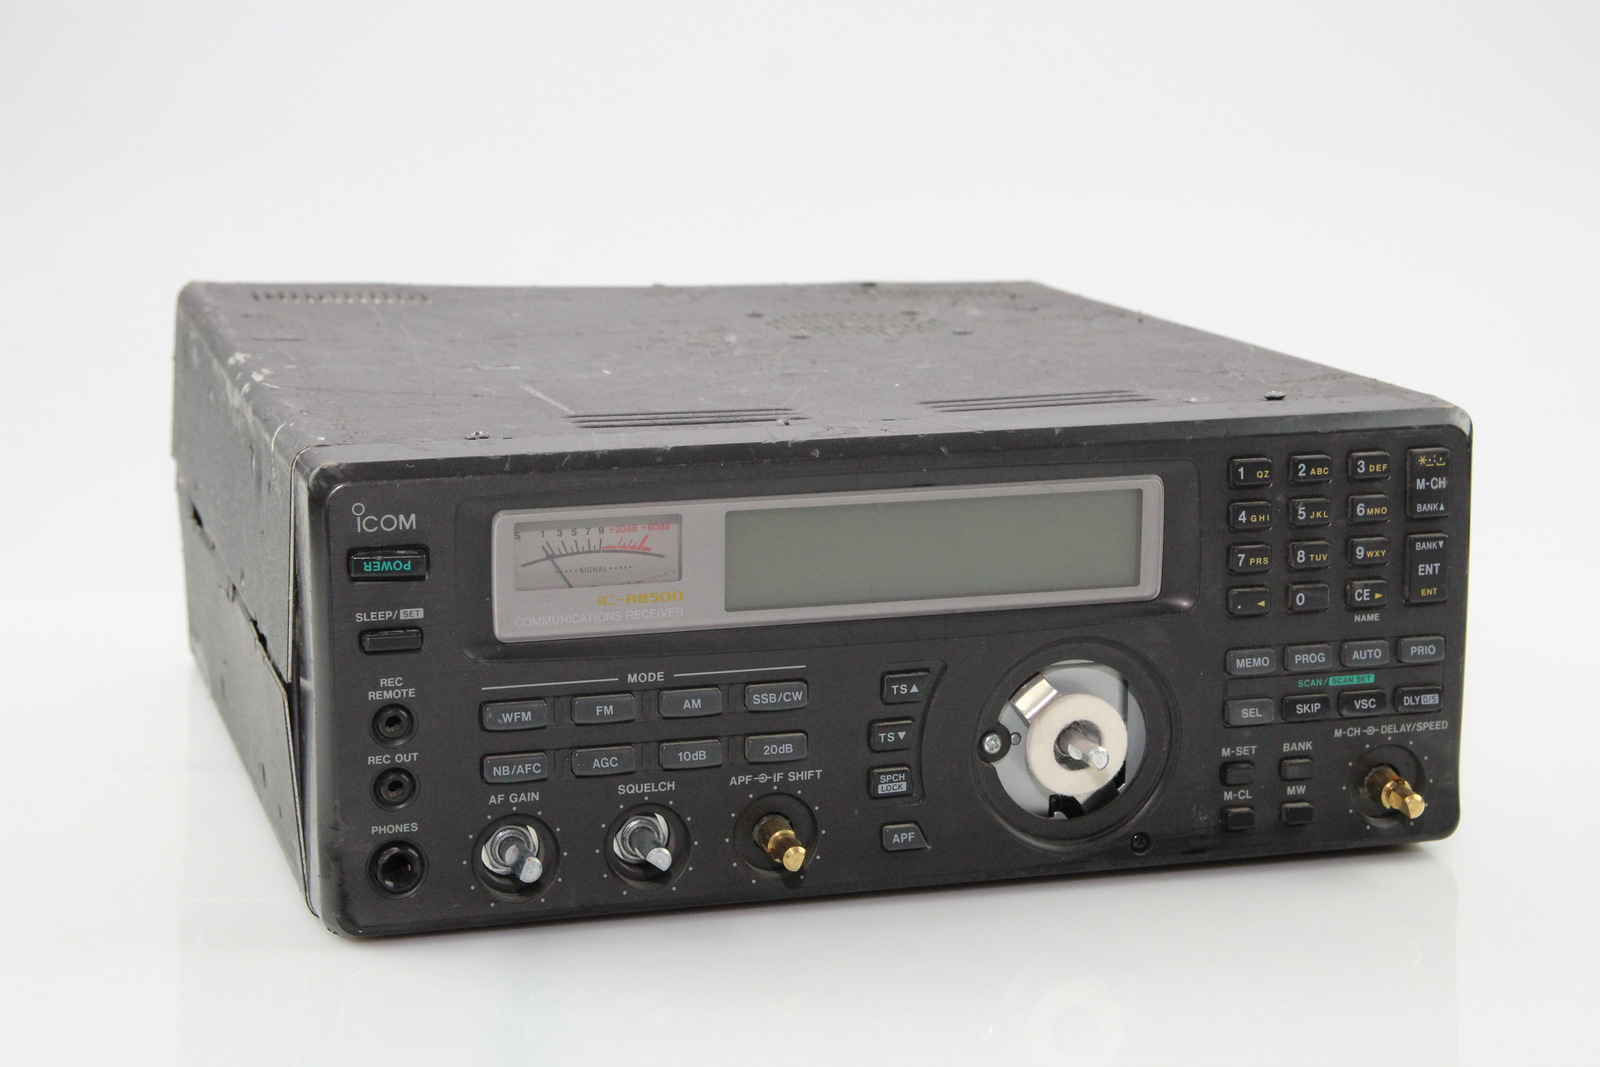 Details about  ICOM IC-R8500 COMMUNICATIONS RECEIVER forpart